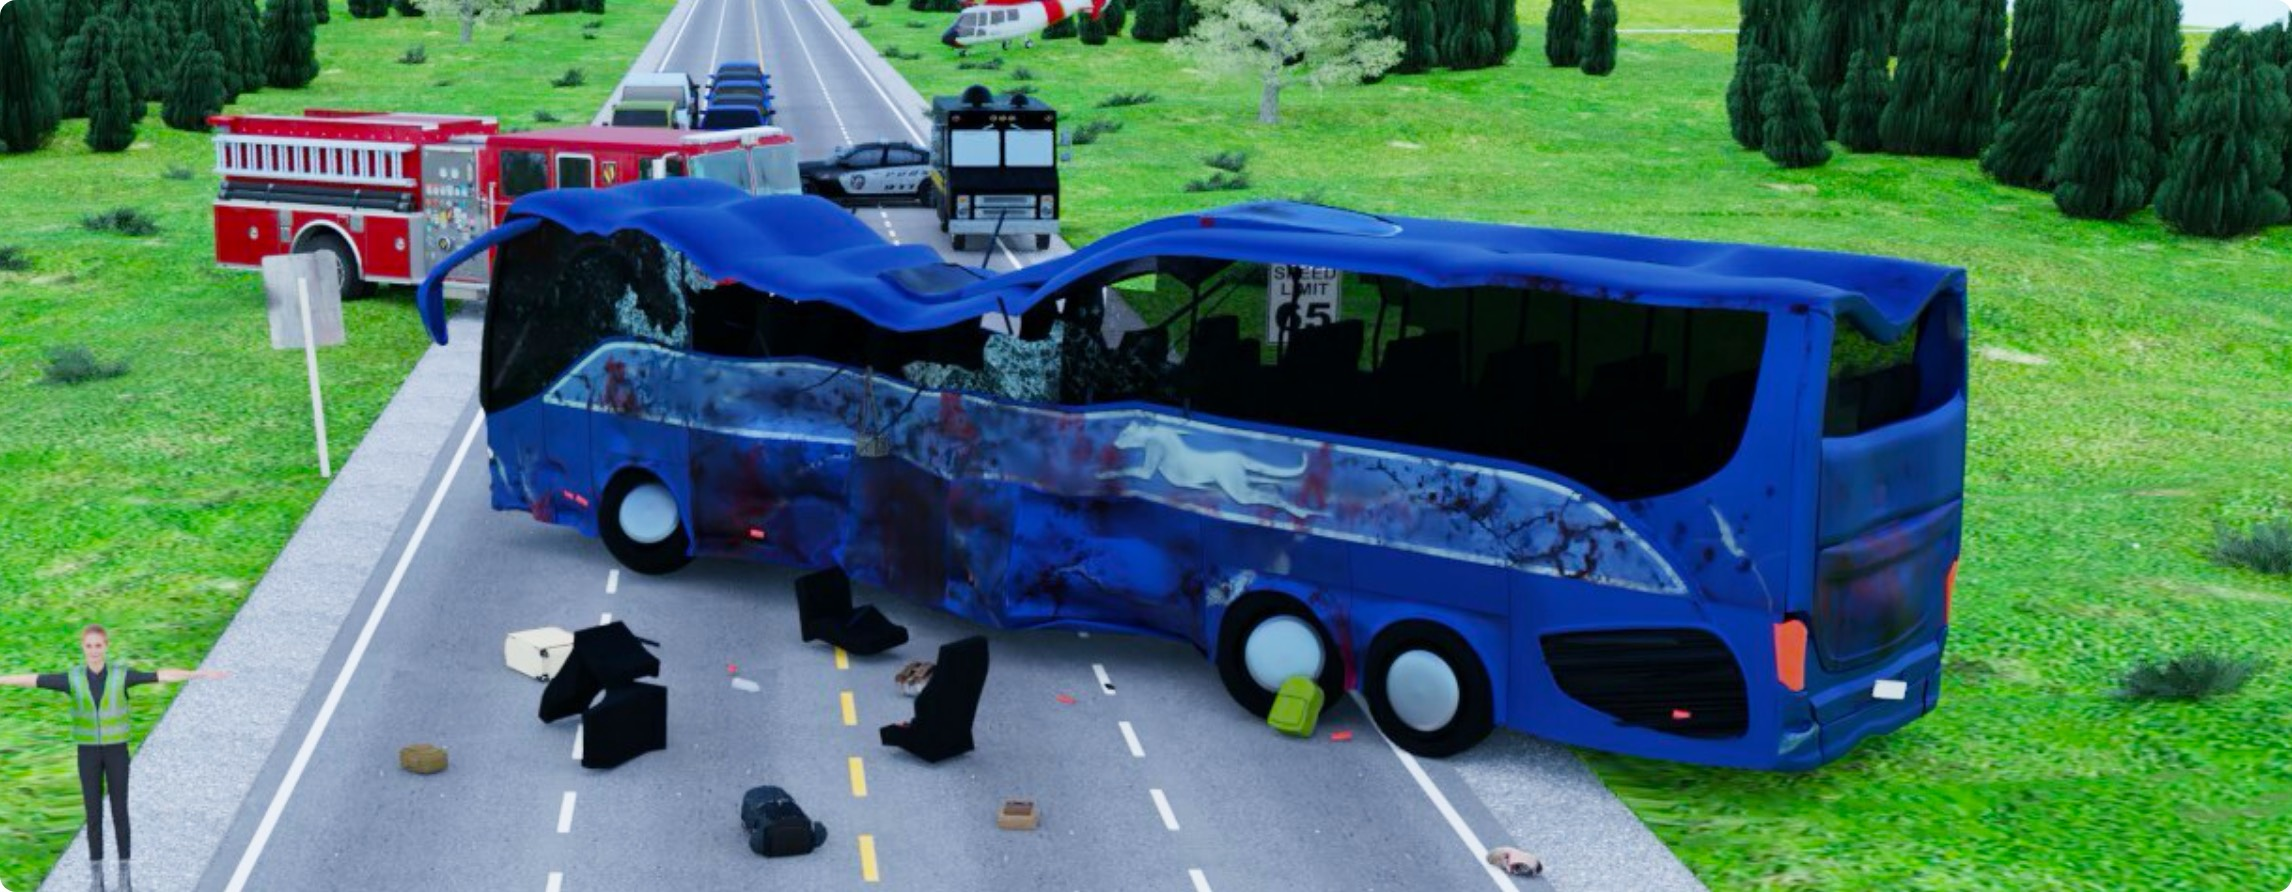 3d Mass casualty incident bus crash scene with debris and emergency vehicles on scene